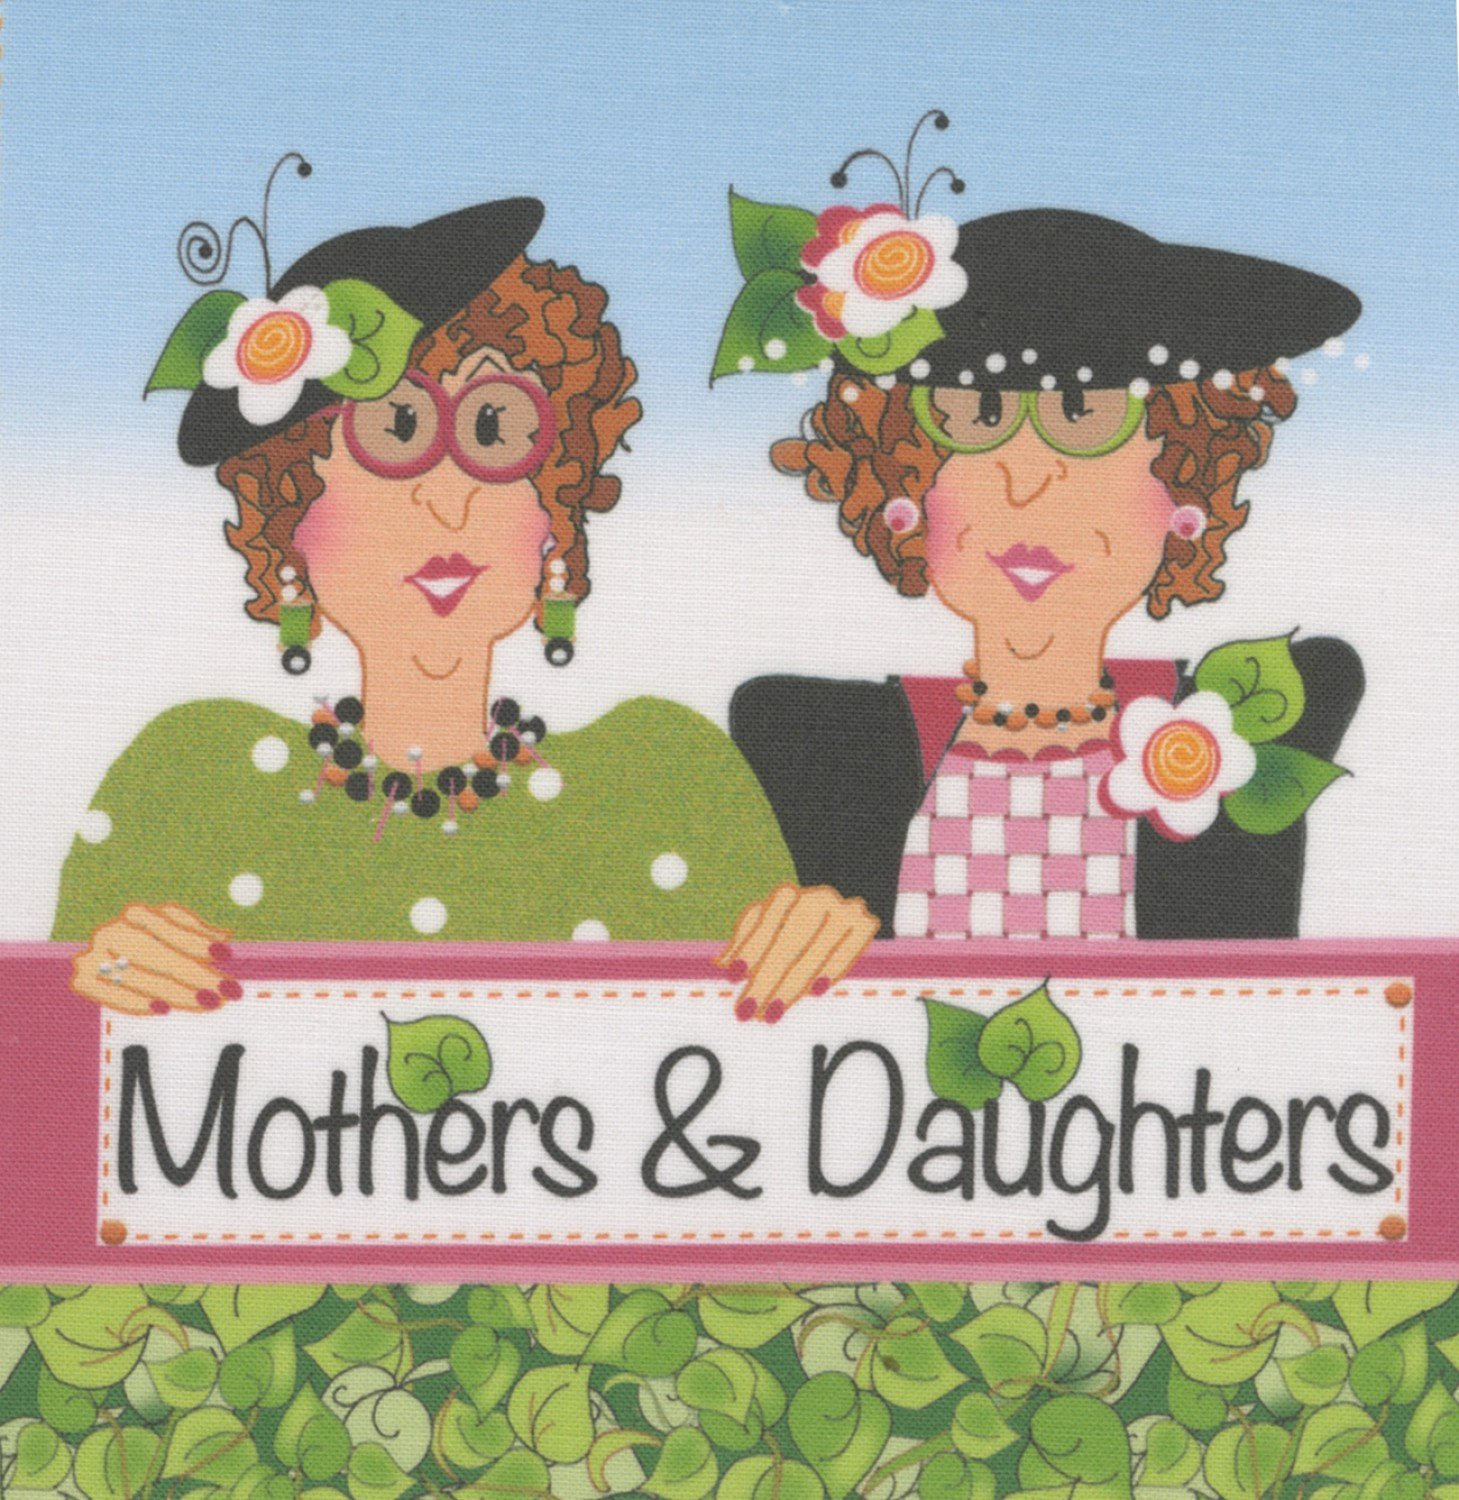 Jody Houghton - Fabric Art Panel - AP640 - Mothers & Daughters - 6in x 6in